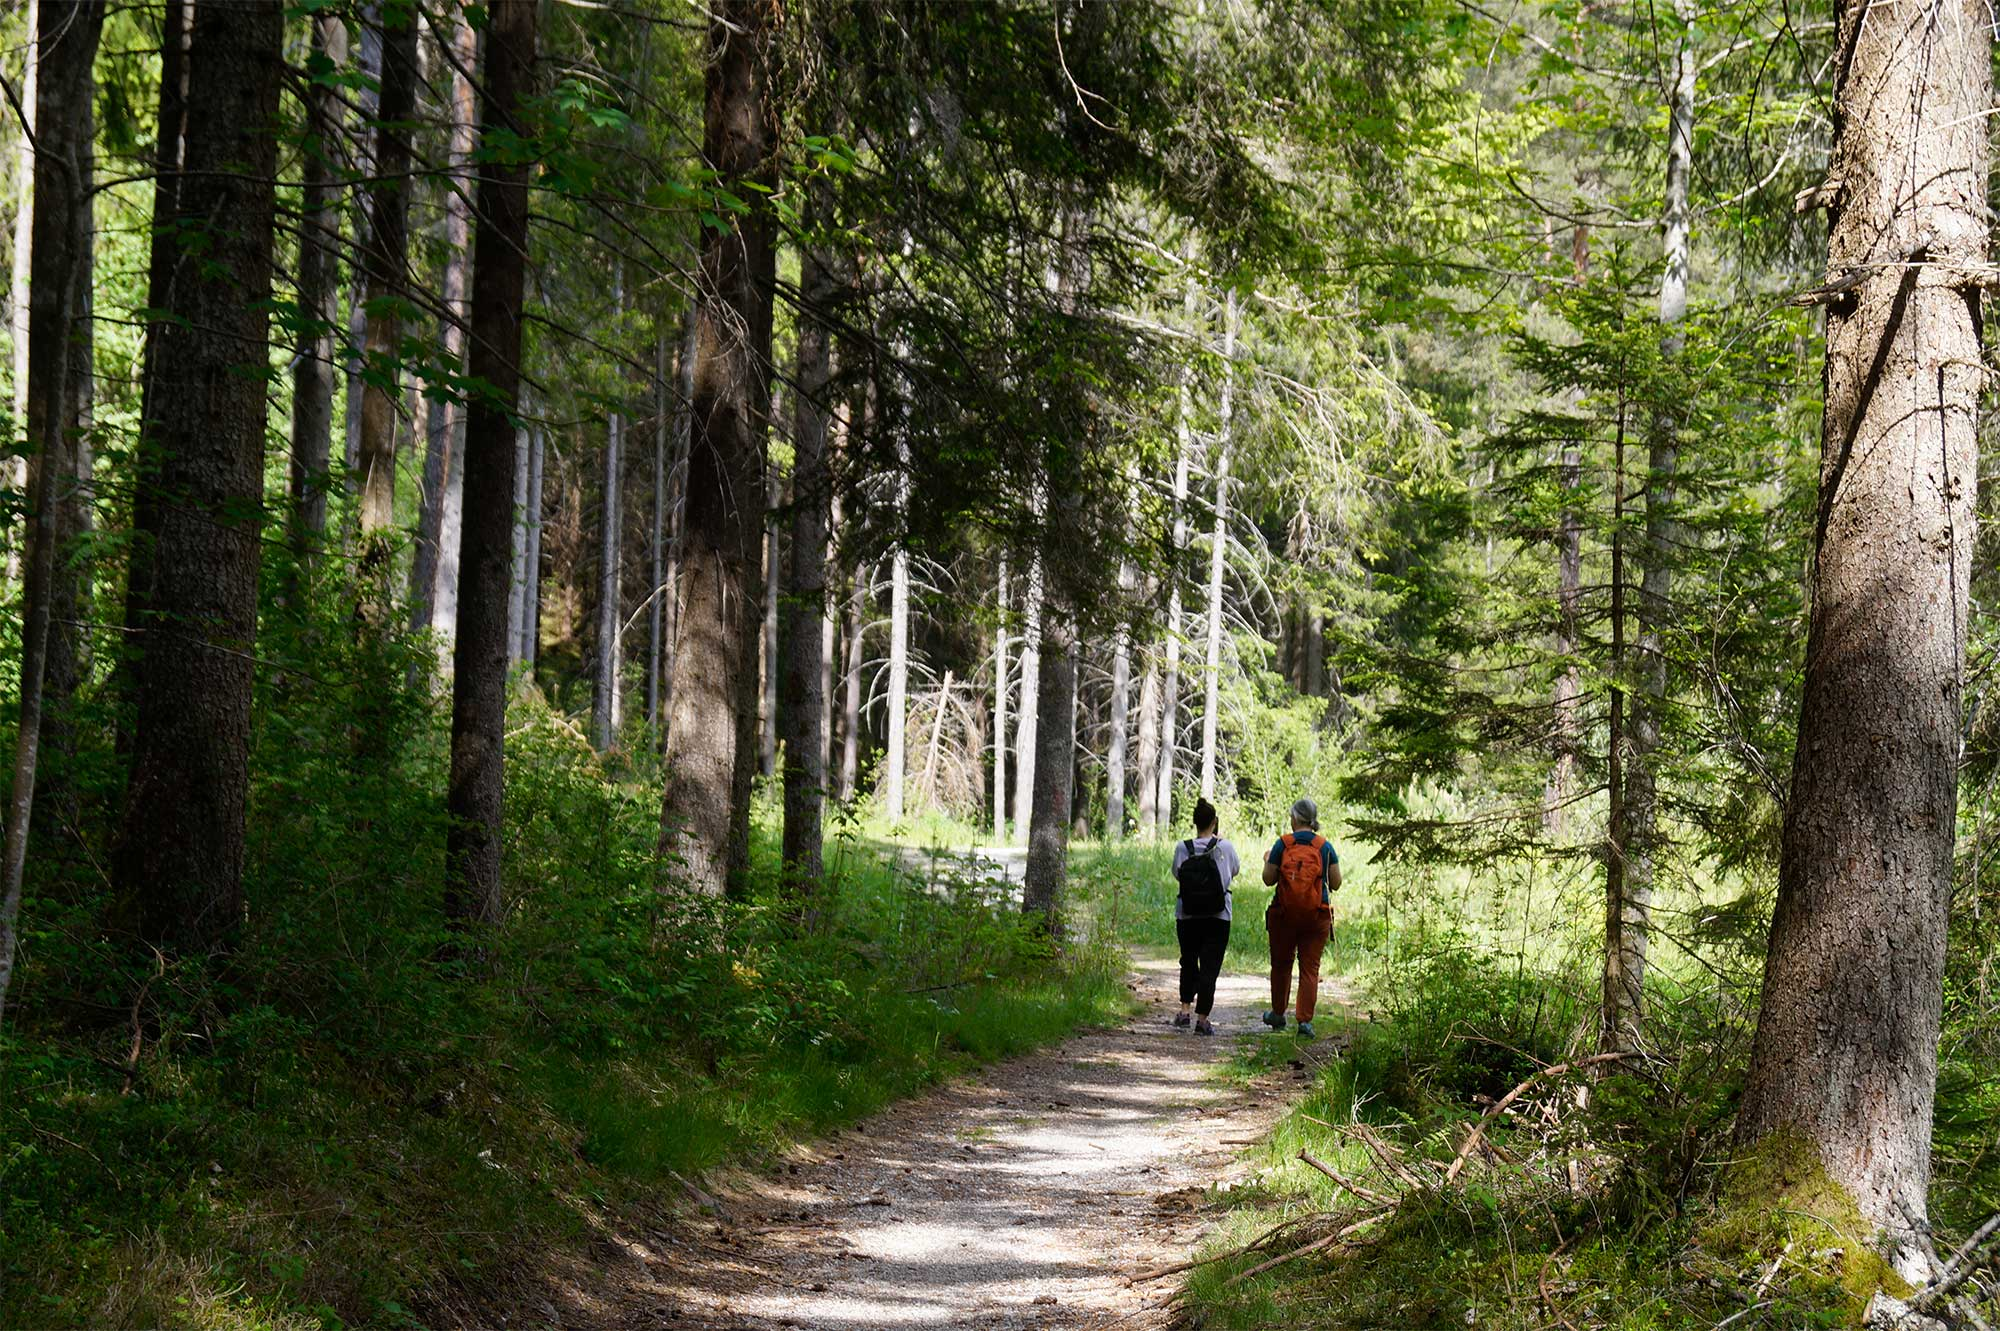 Hiking in Tyrol's green forests